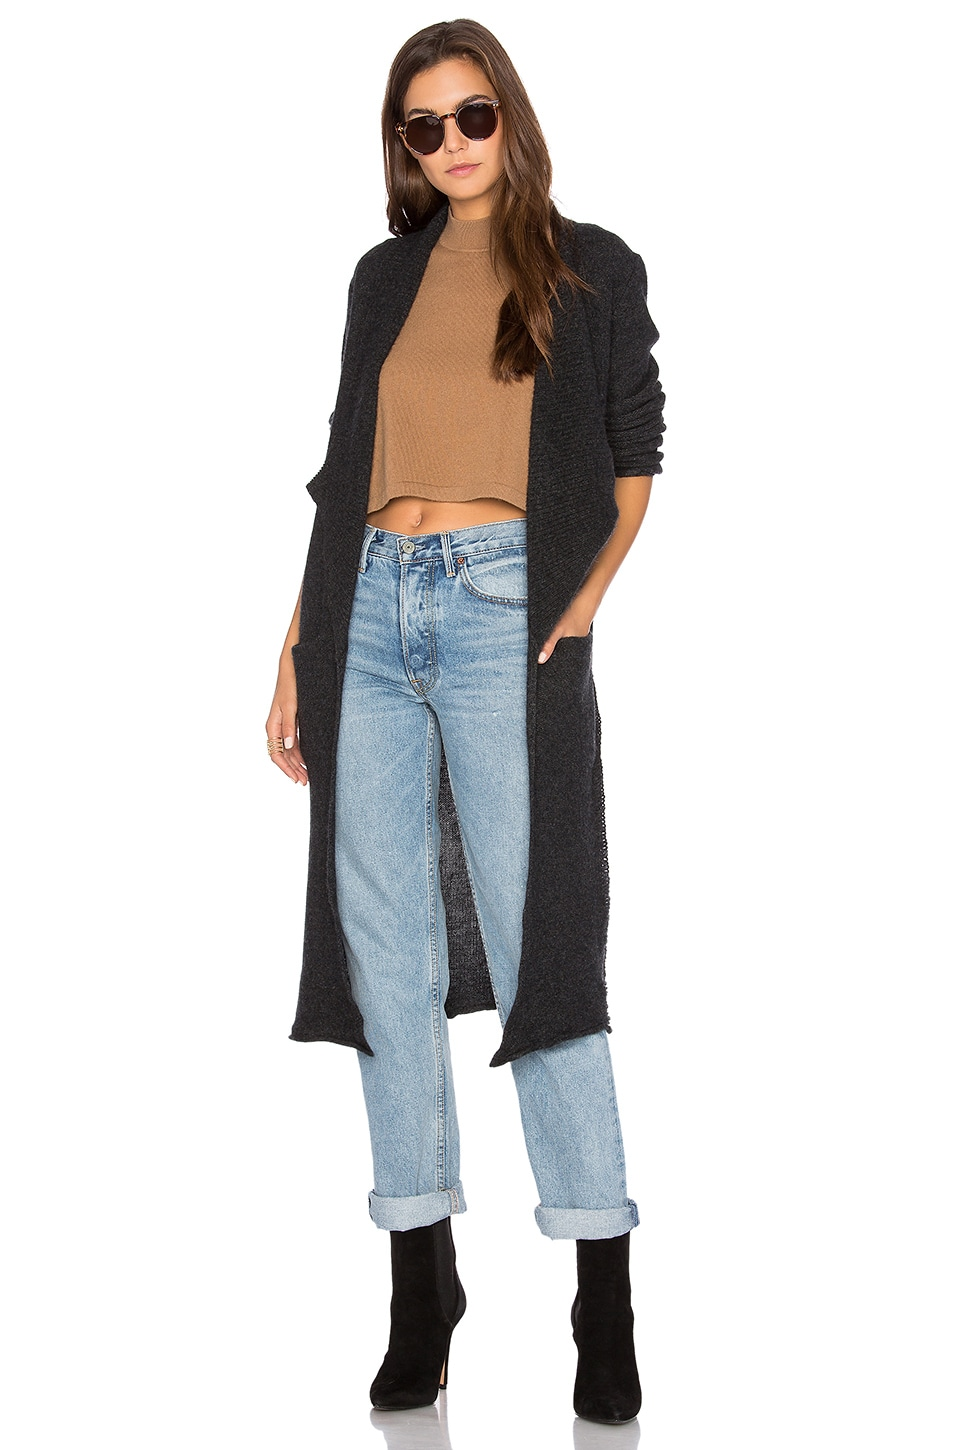 27 miles malibu Naida Long Cardigan in Shadow